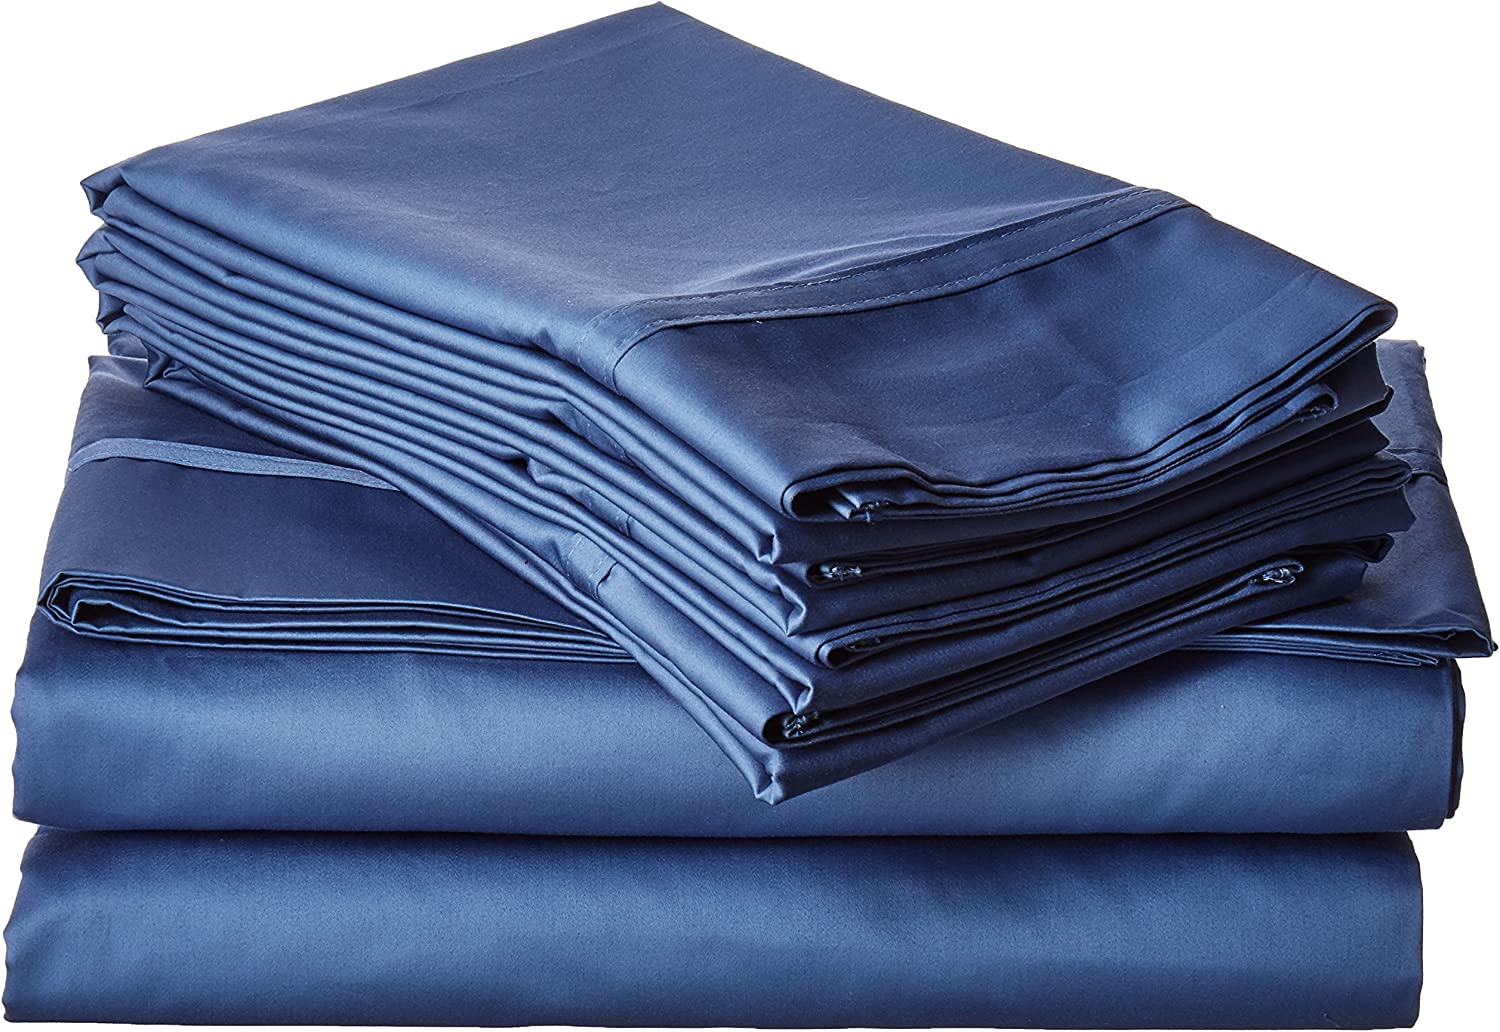 Tribeca Living 6 Piece 500 Thread Count Blue Bed Sheet